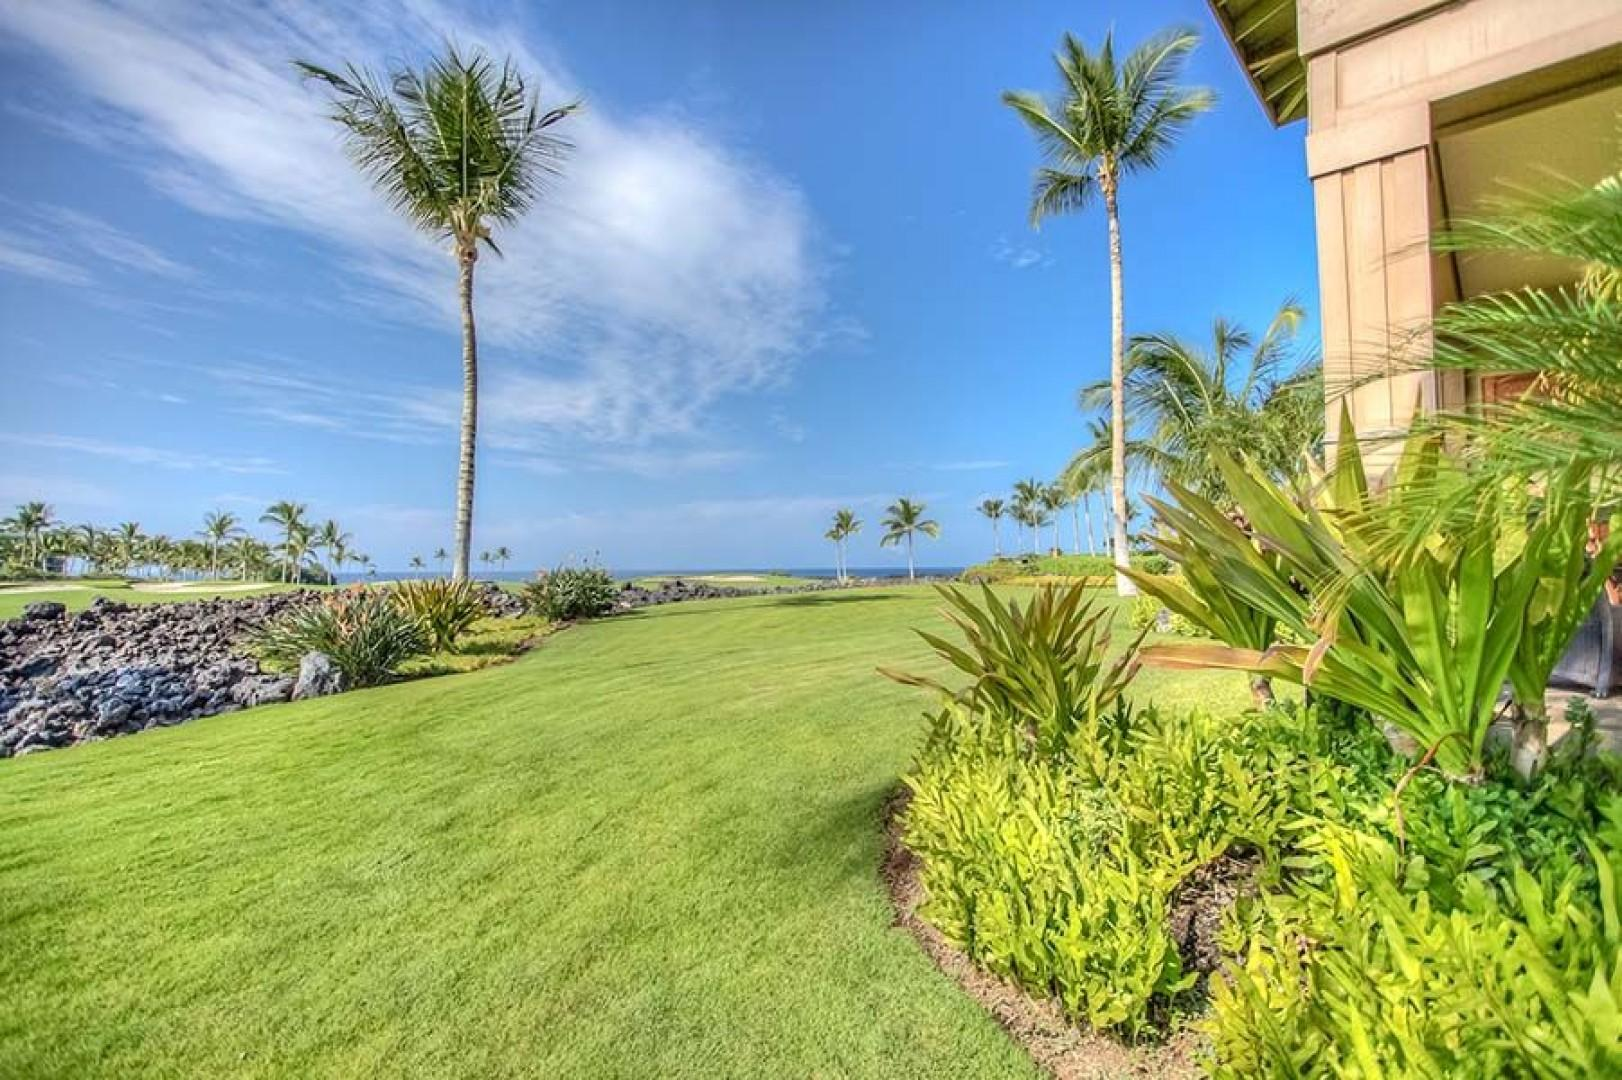 Just a short walk from the lanai to the Resort Pavillion